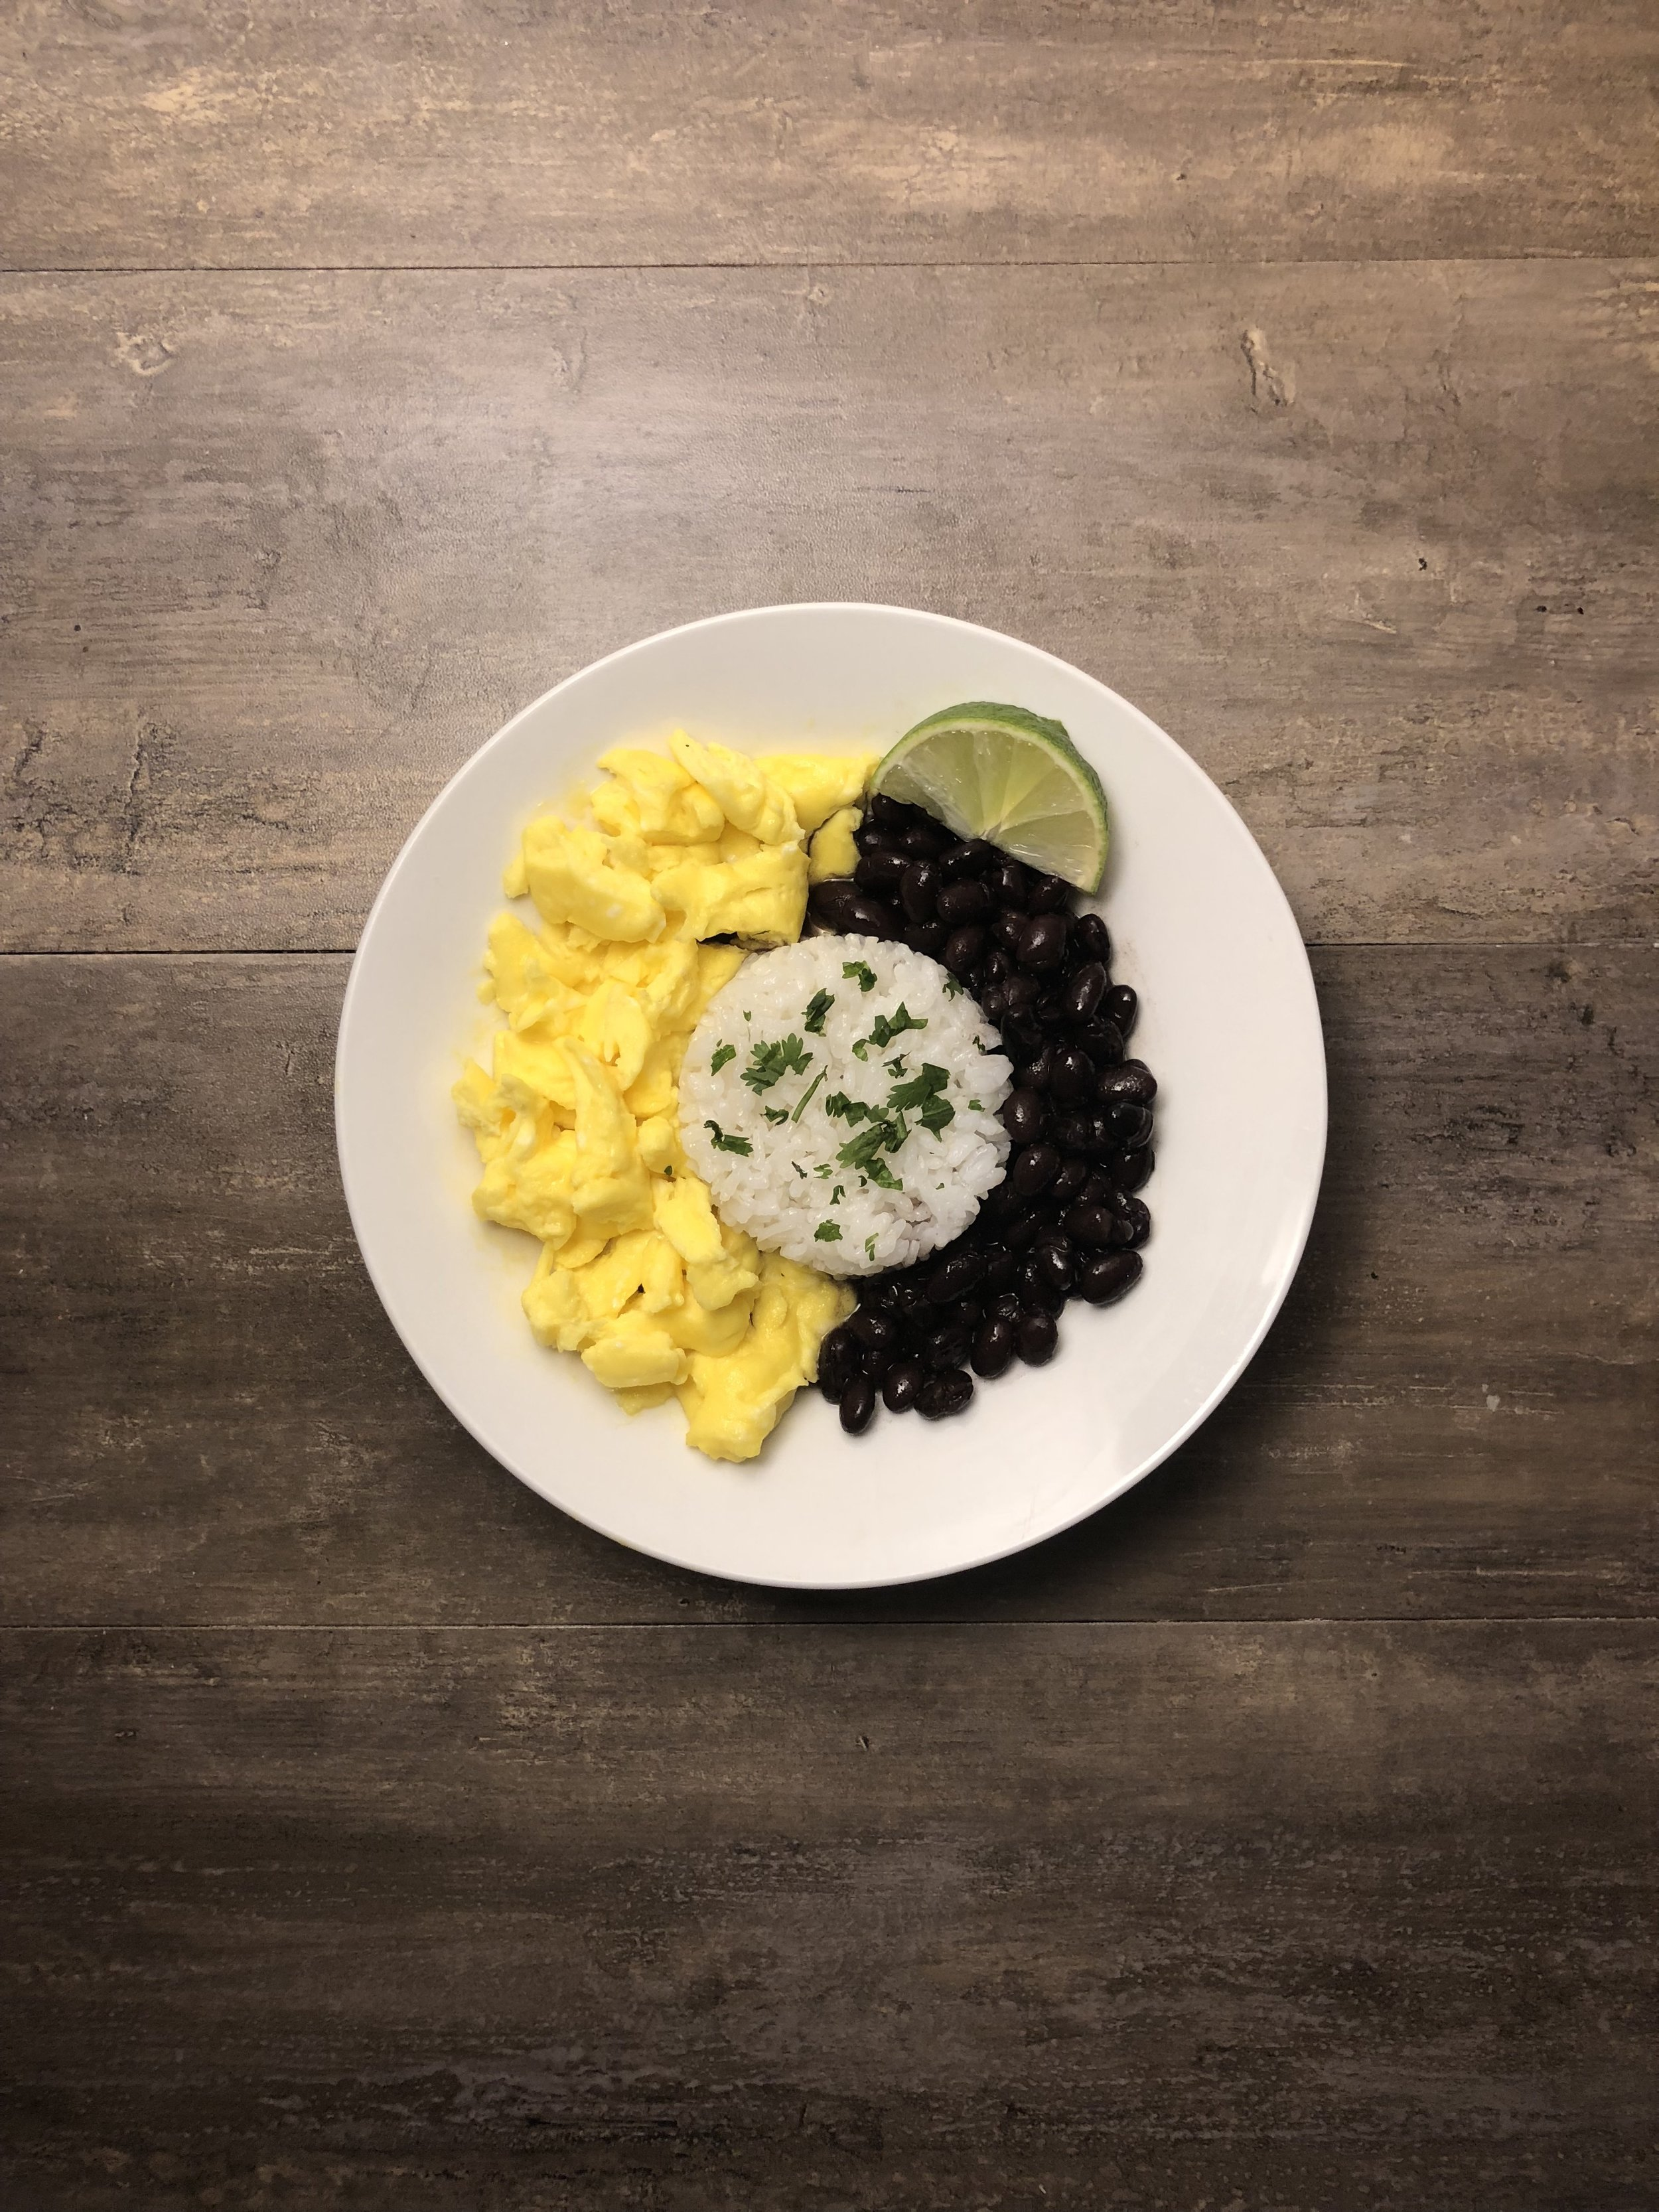 5-Minute Rice and Beans